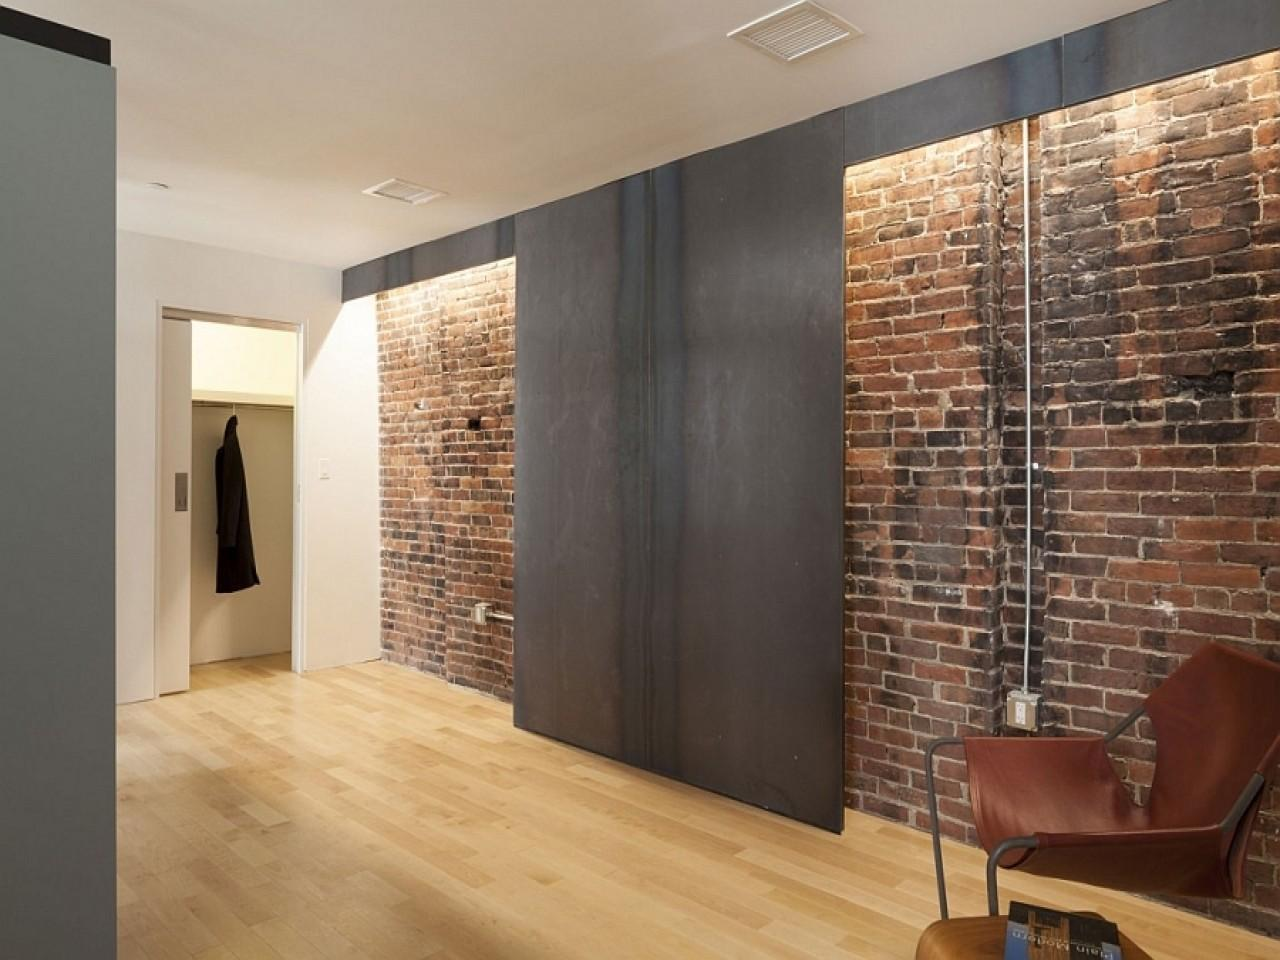 Brick Wall Inside House Thin Veneer Lowe39s